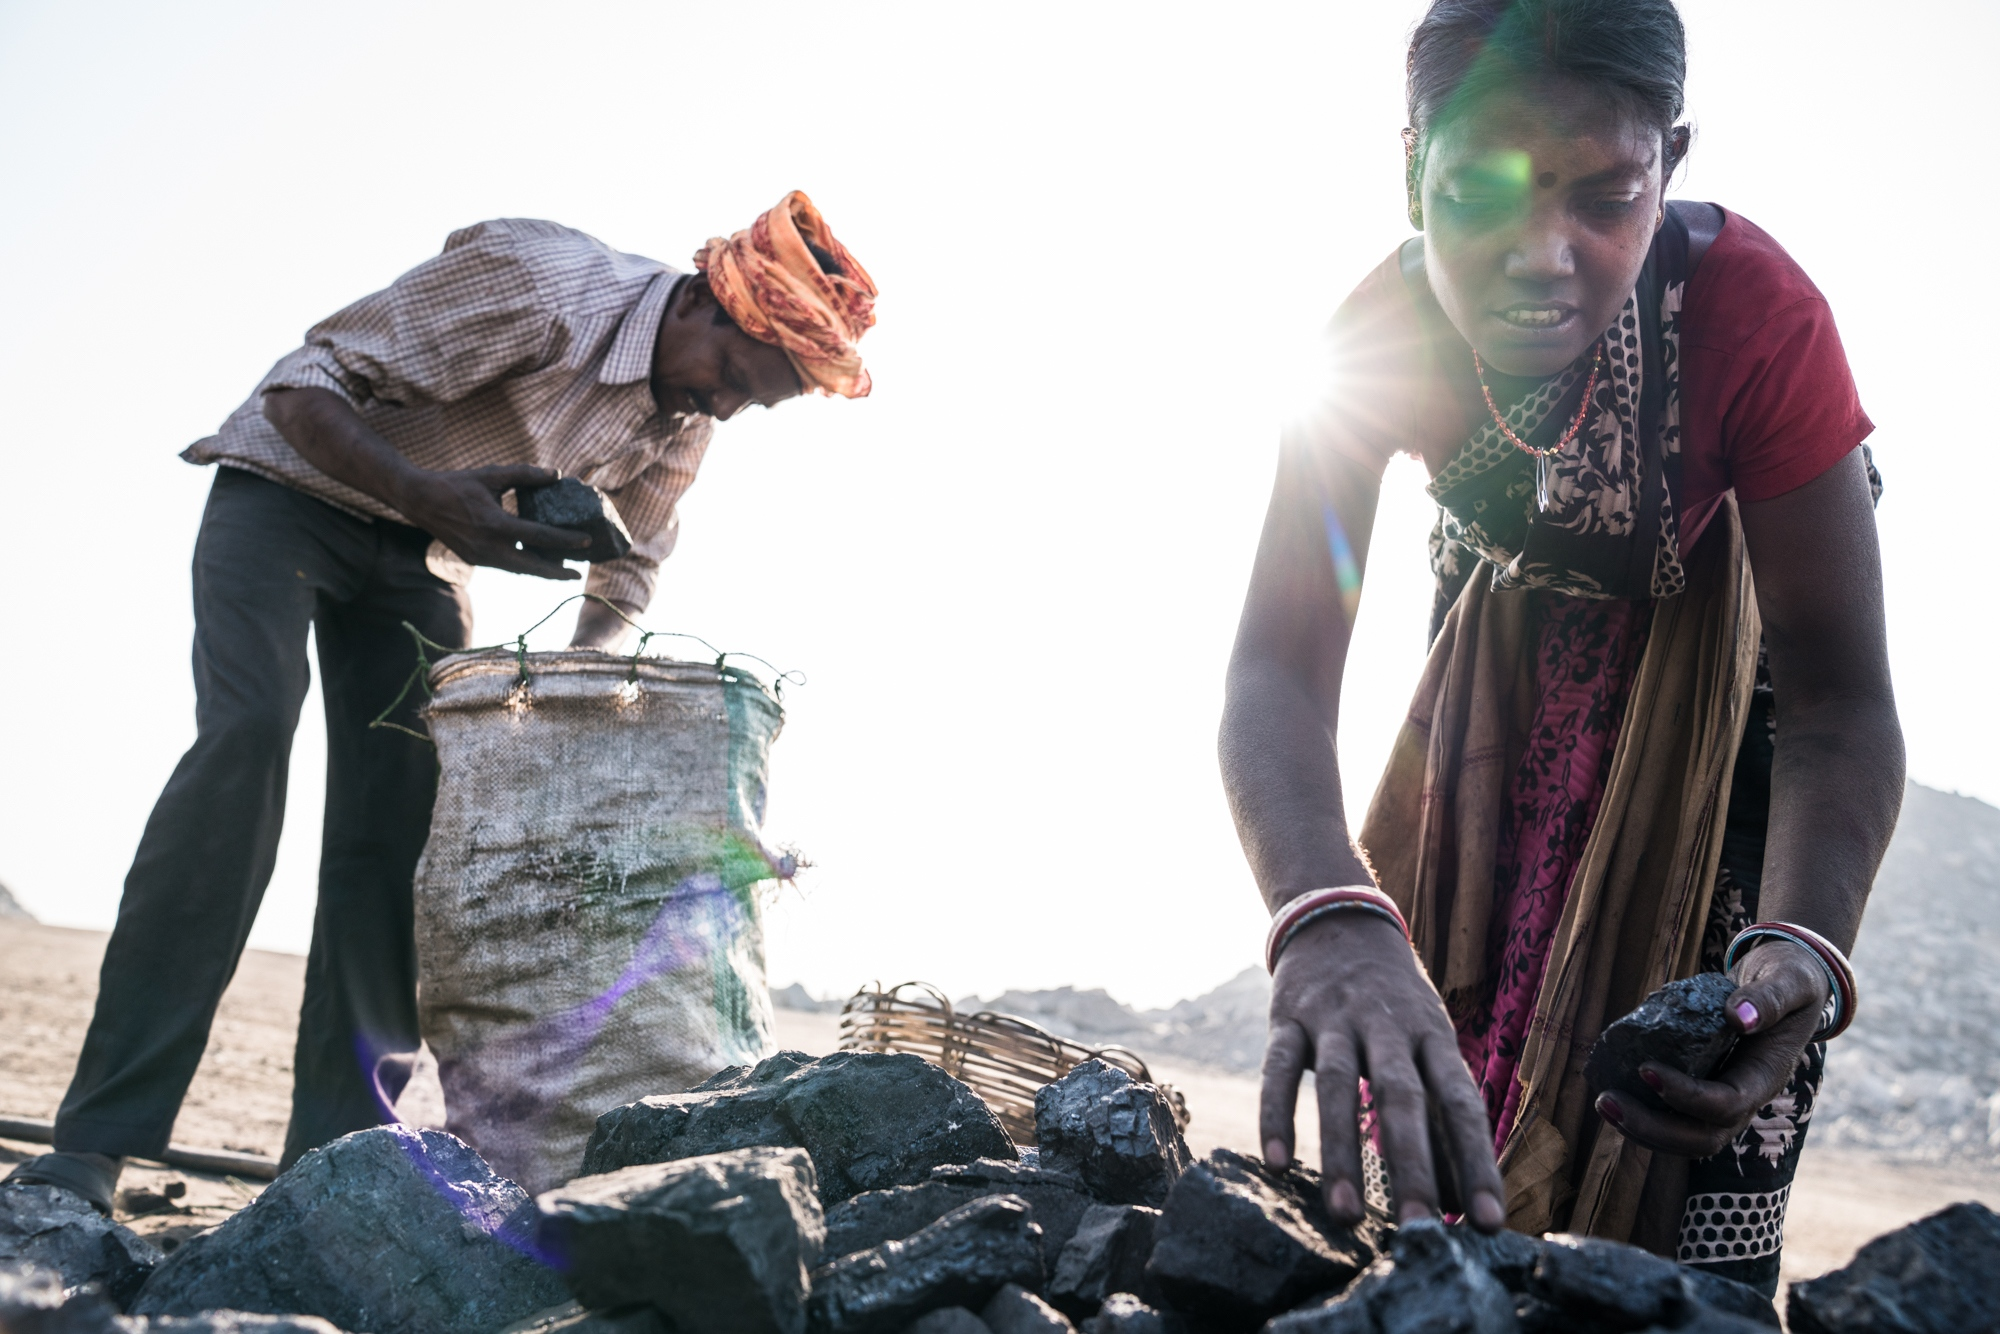 Miners select scavenged coal for sale or to be used personally in their homes as cooking fuel.